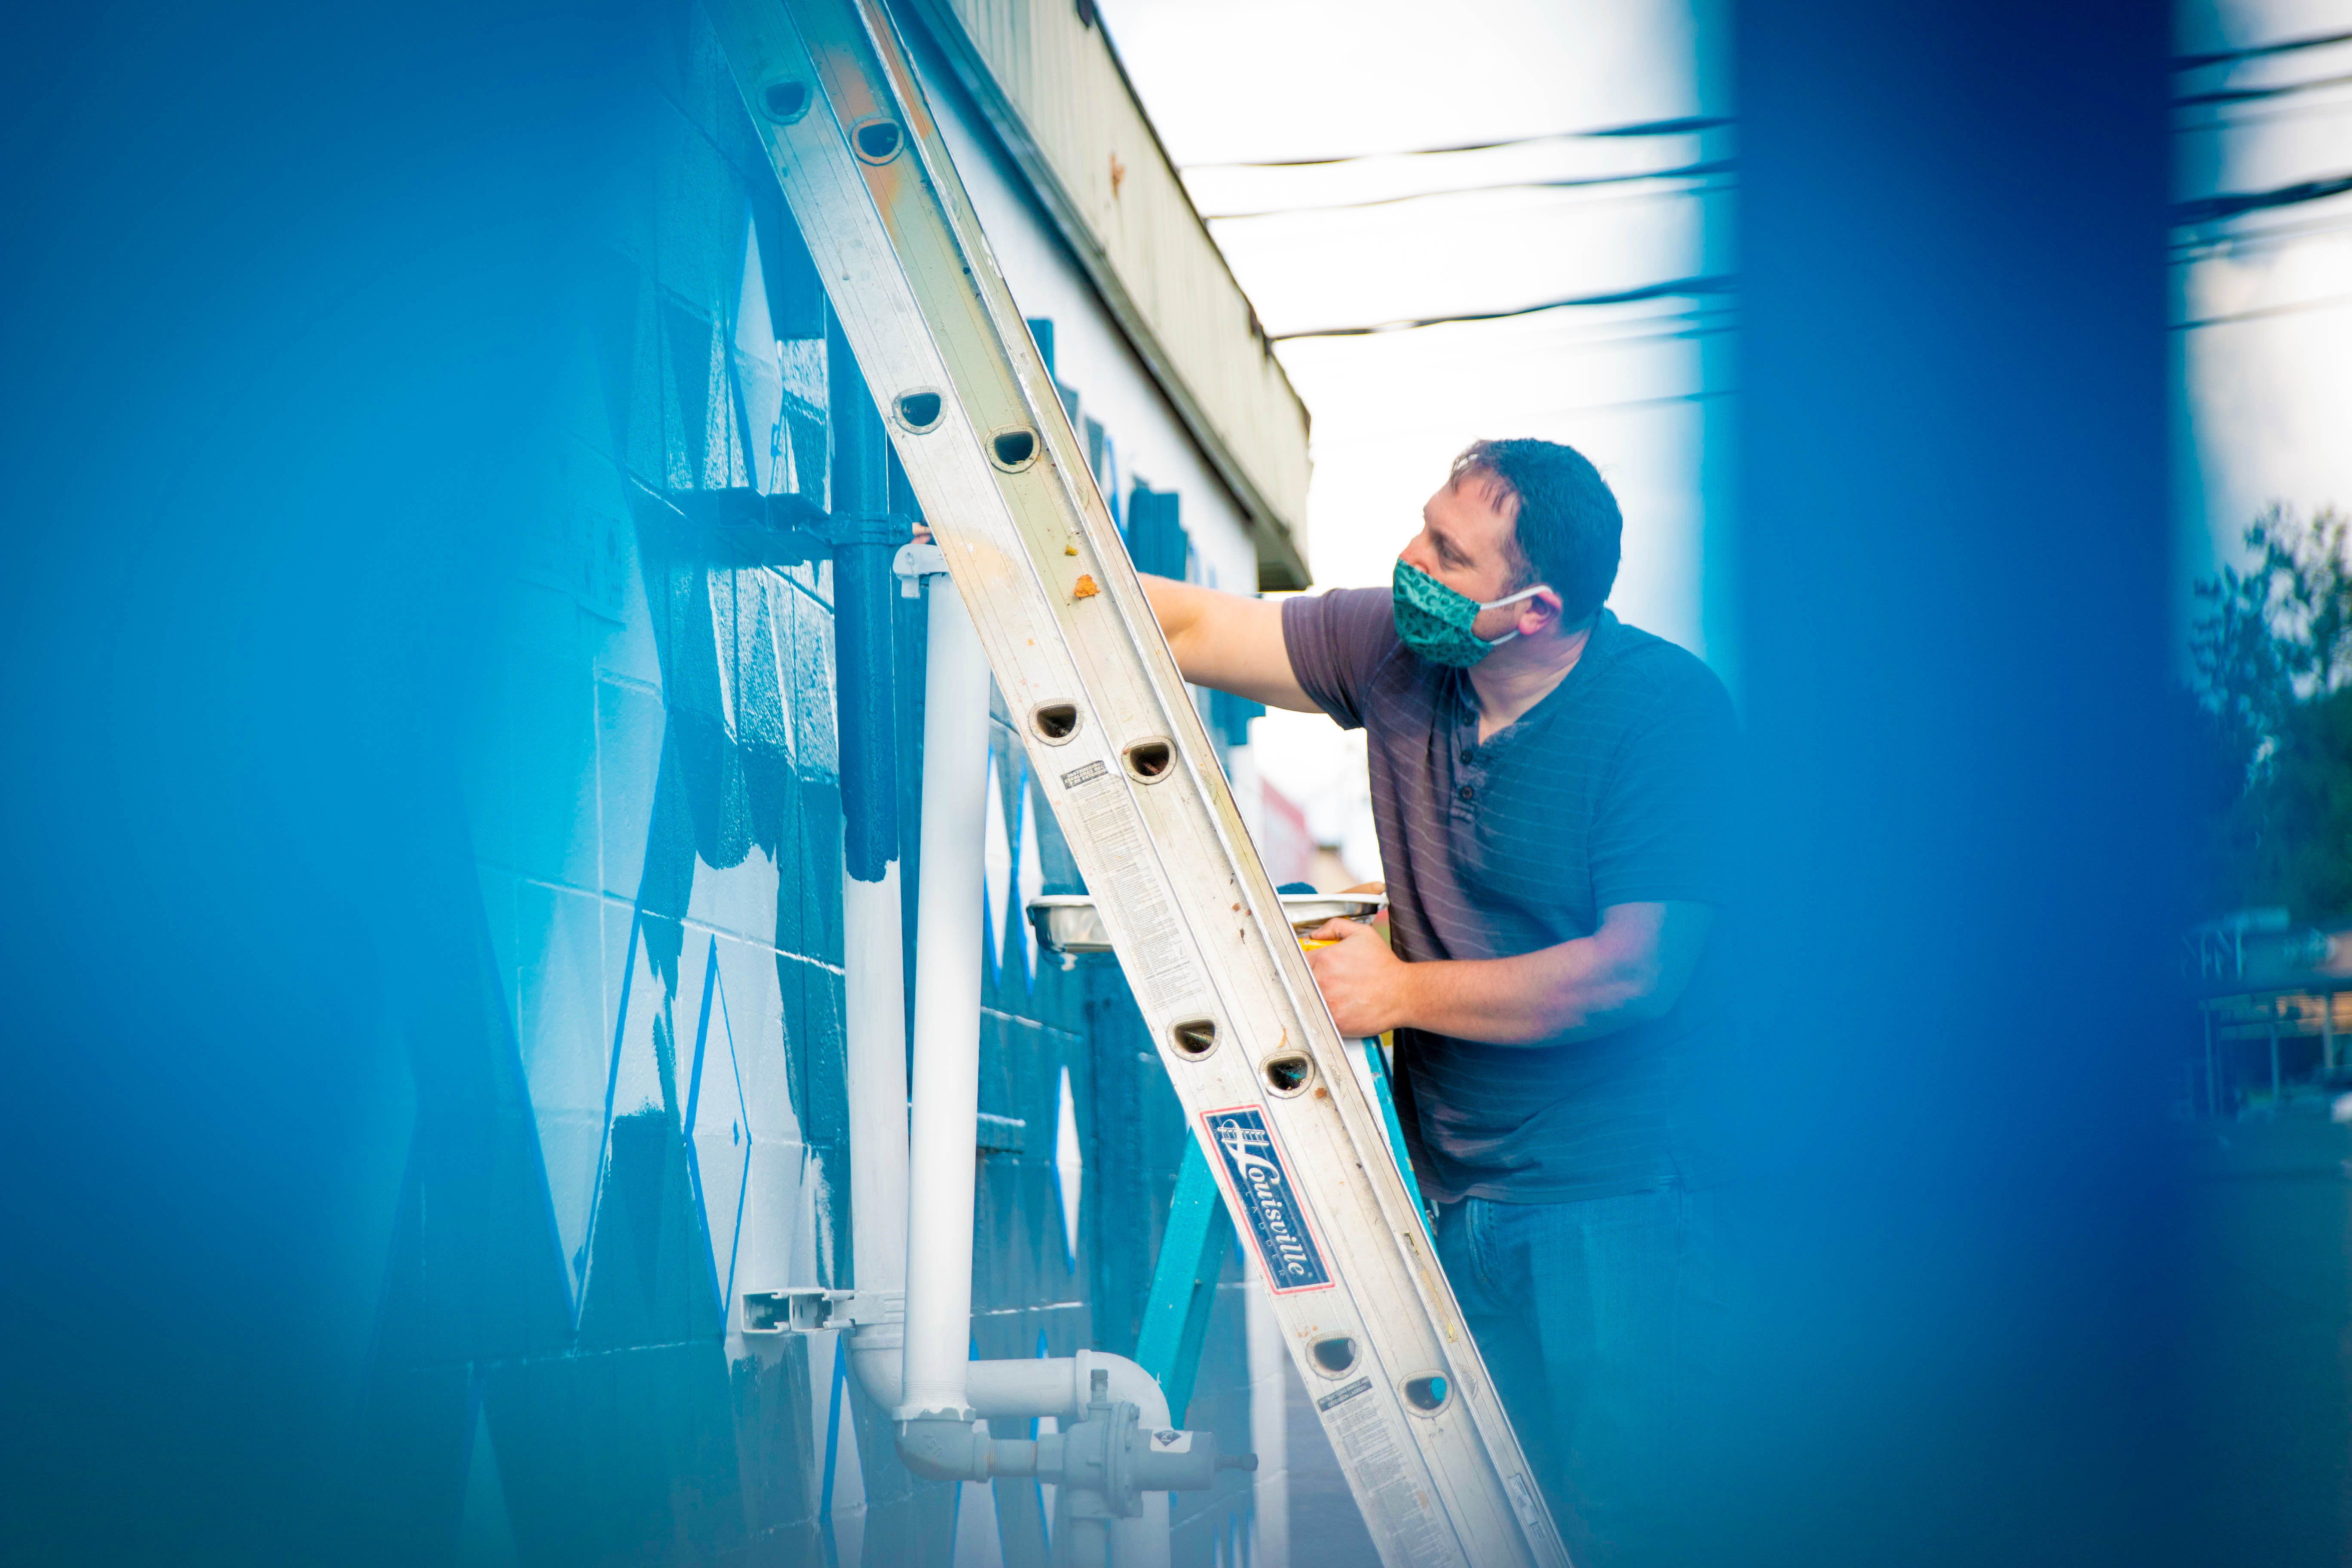 Man on ladder painting mural